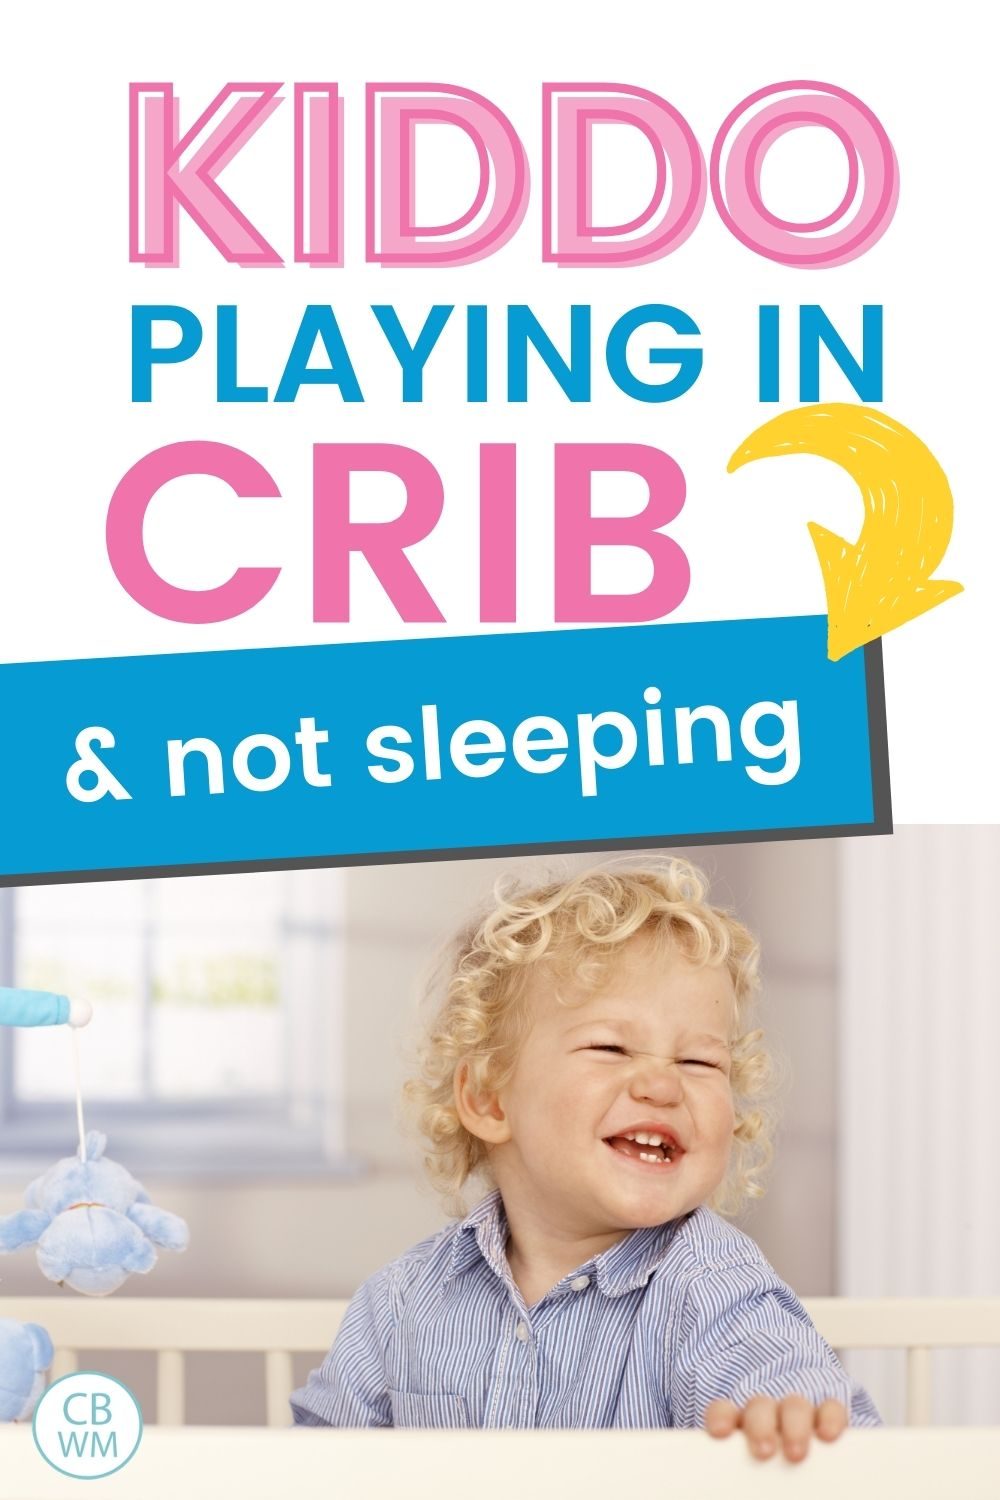 Playing in crib and not napping